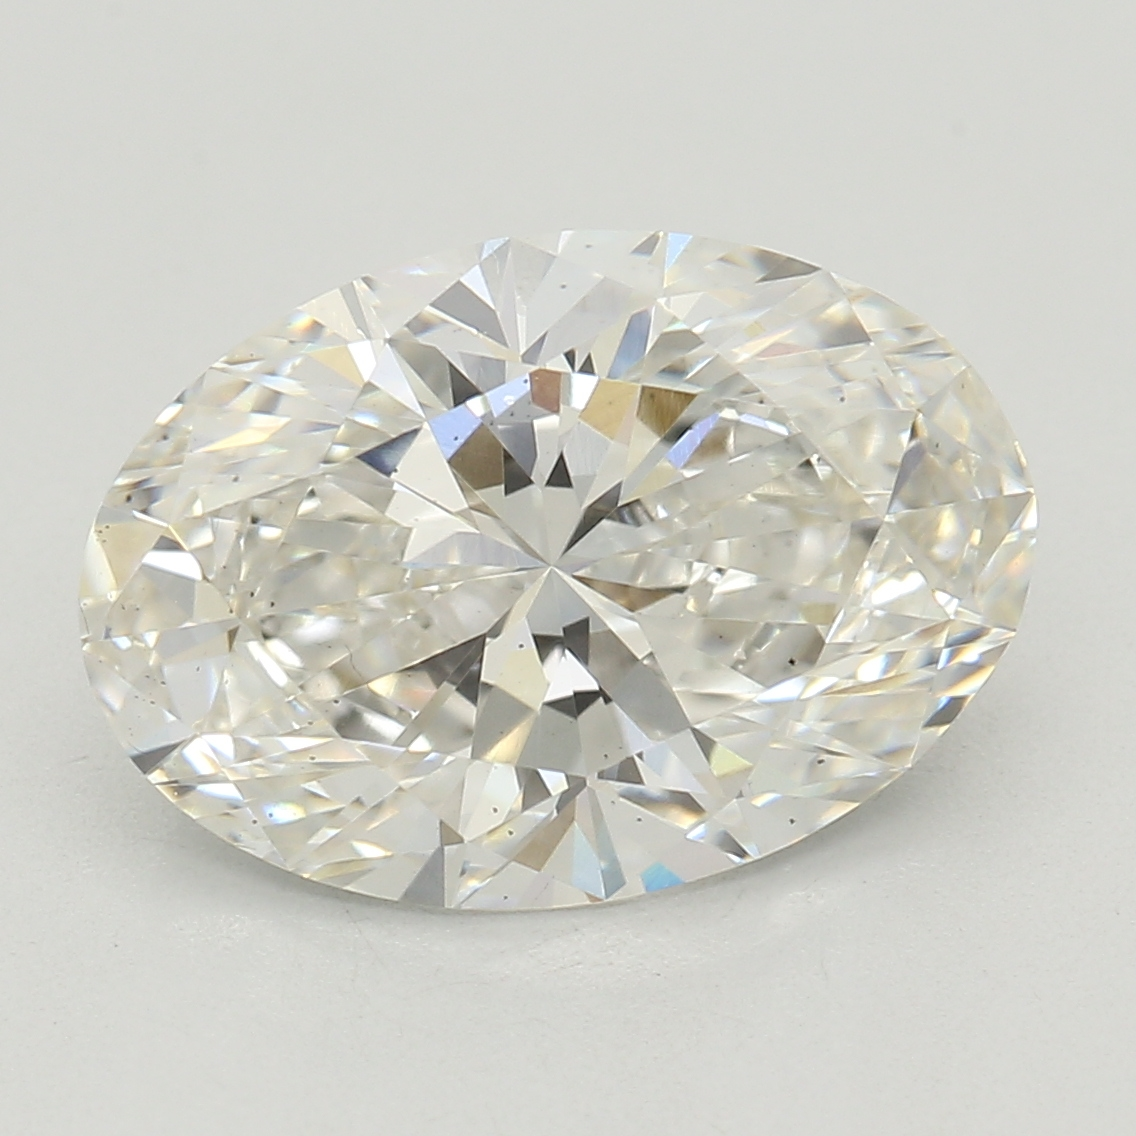 Oval Cut 1.83 Carat I Color Vs2 Clarity Sku Lg3956286